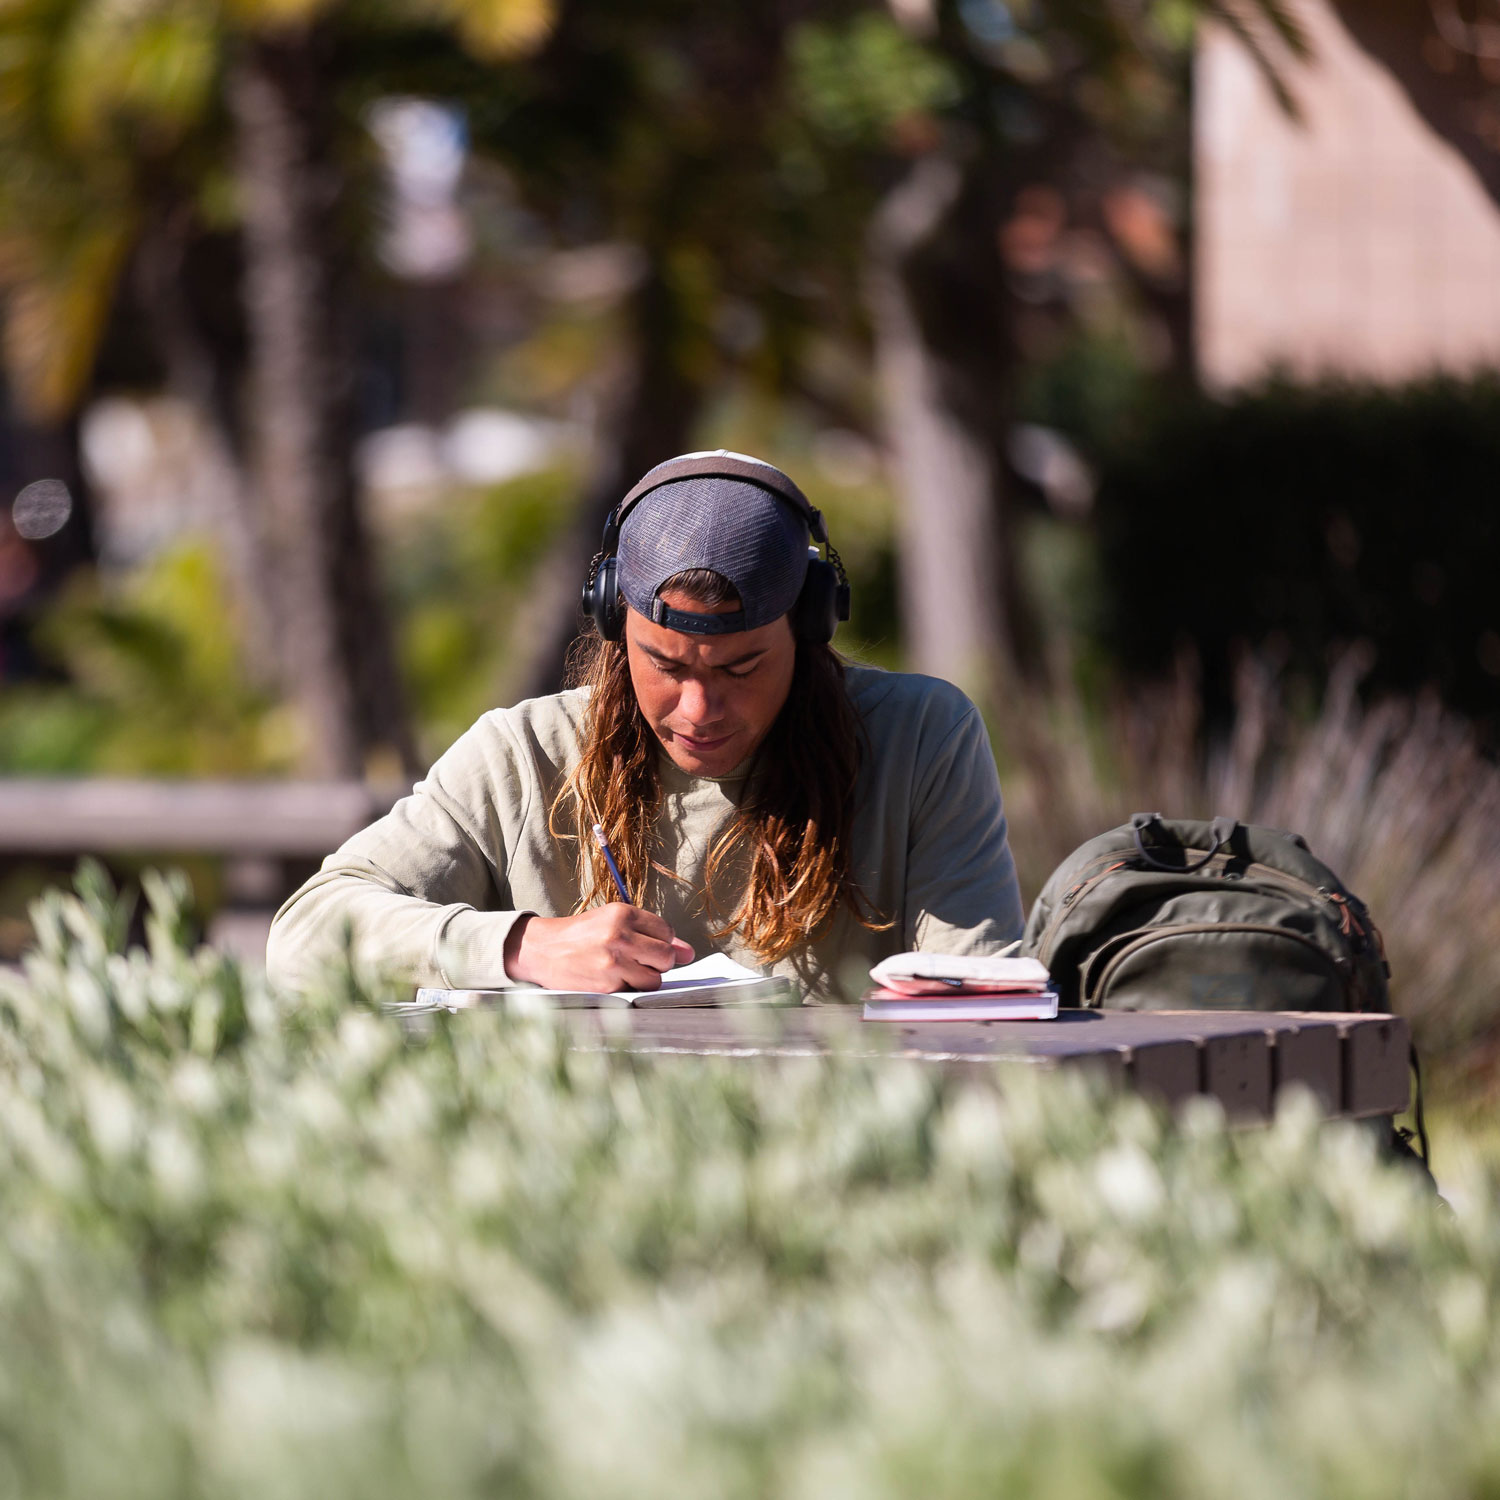 A student sitting outside in the sun writing in their notebook.